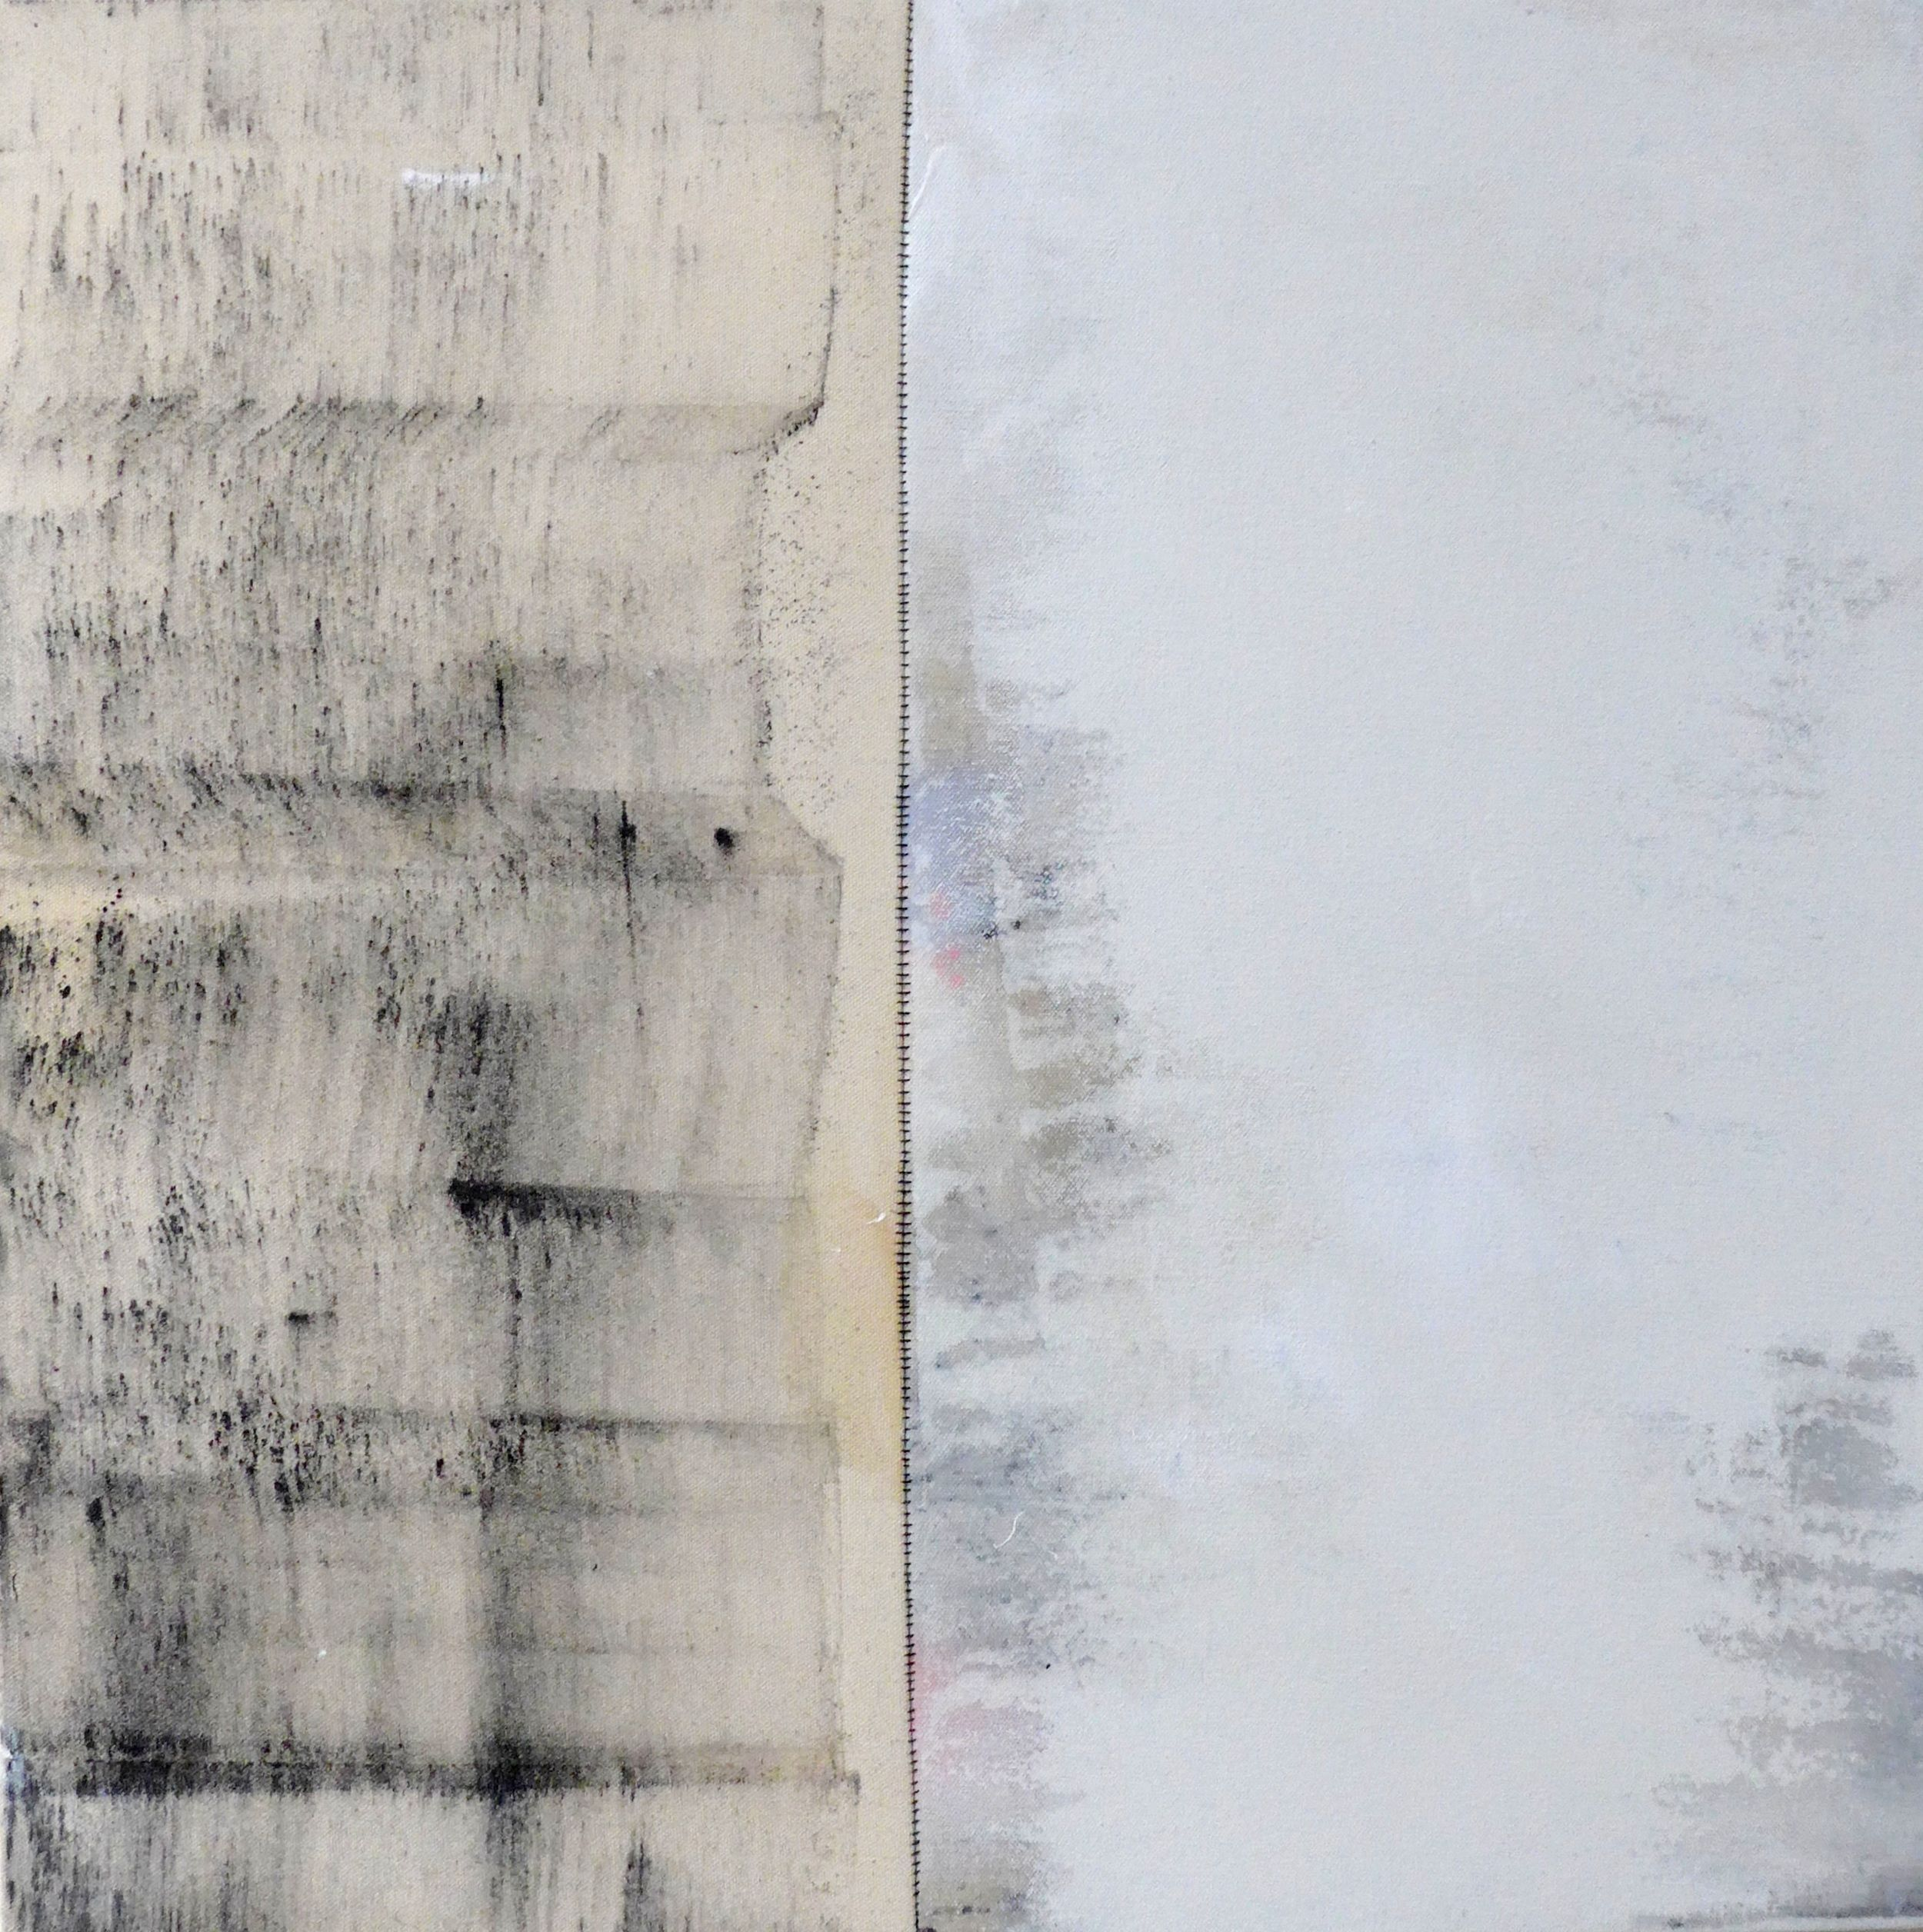 """Artist: A. Nigh Herndon  Title: Untitled  Dimensions: 20"""" x 20"""" x 1.5""""  Medium: graphite x enamel x industrial paint on unprimed canvas, two panels sewn  2016"""